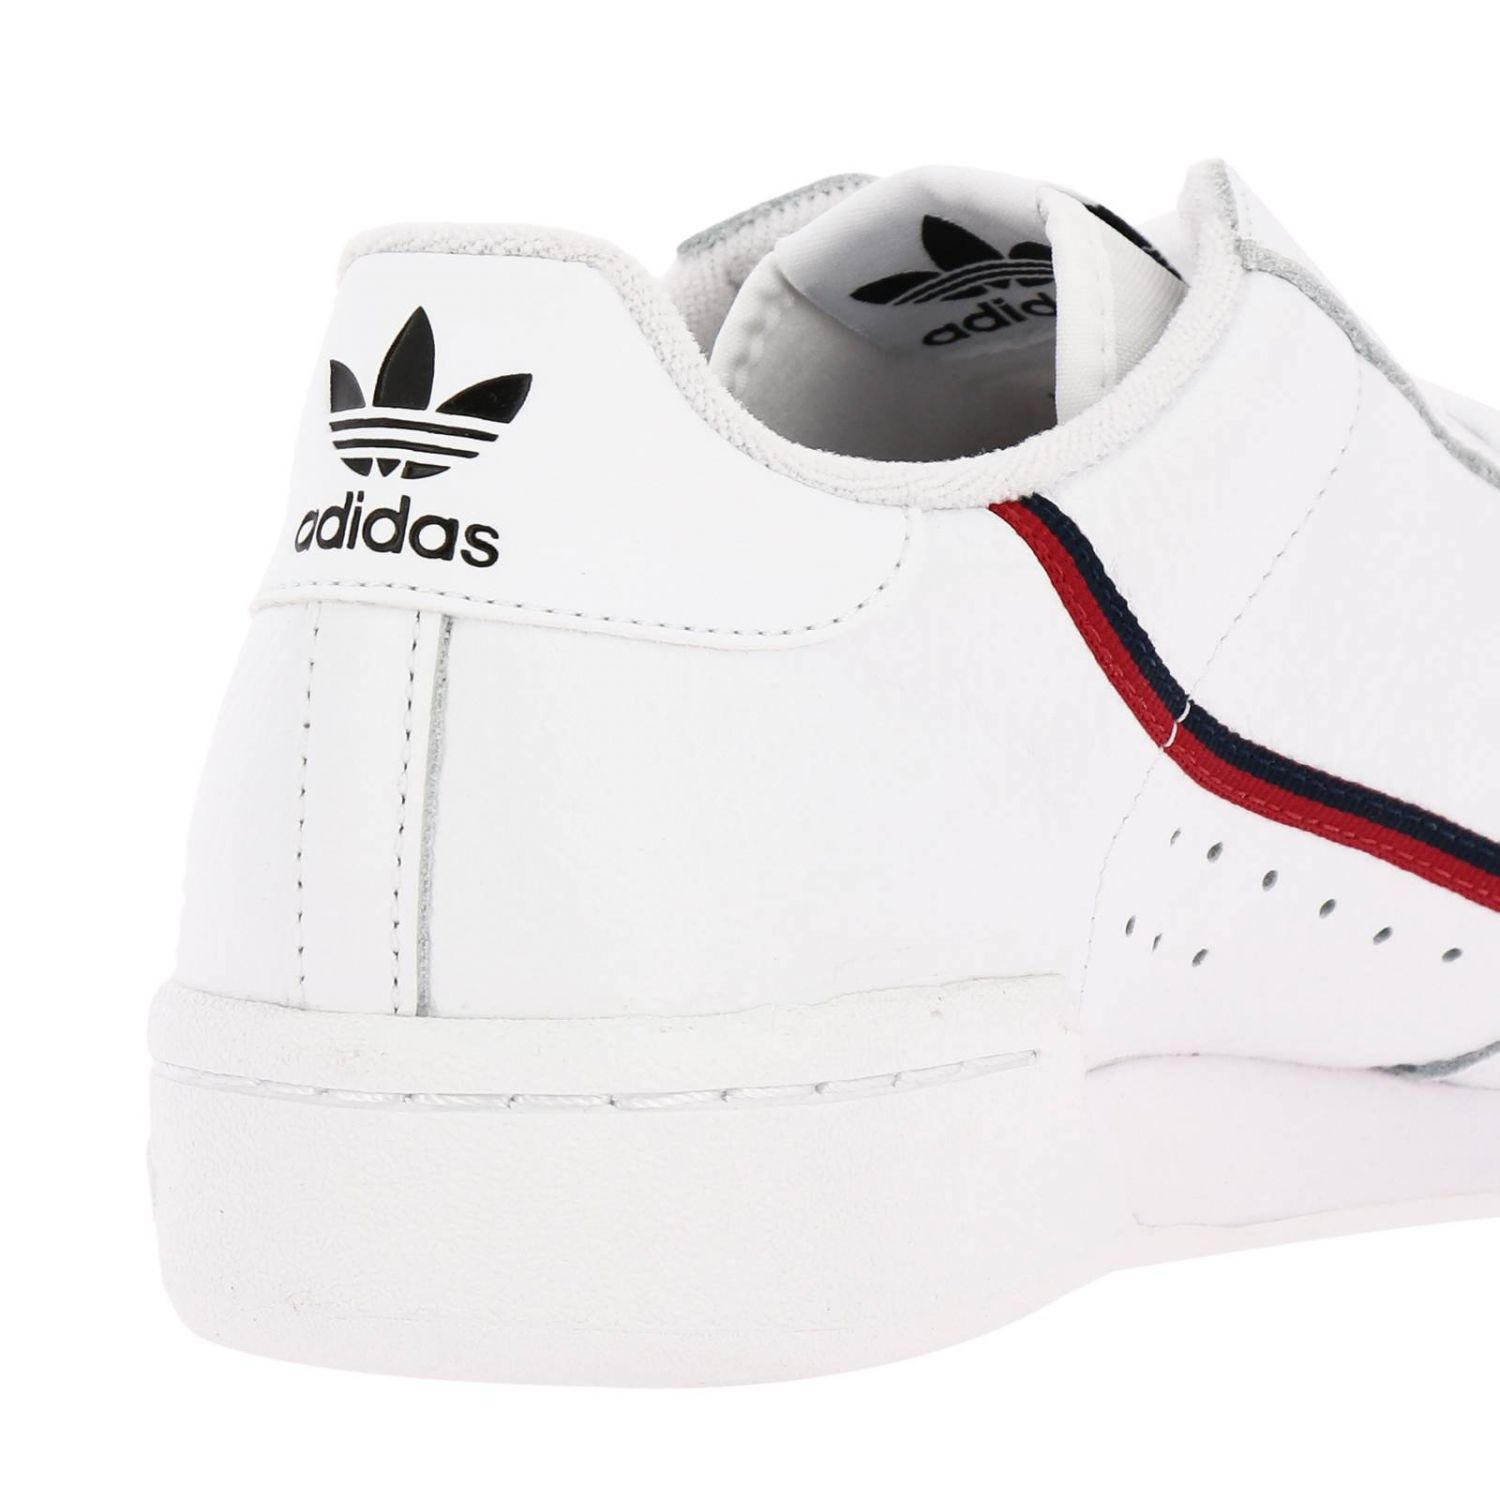 Sneakers Adidas Originals: Adidas Originals 80 Sneakers in leather with stripes white 4